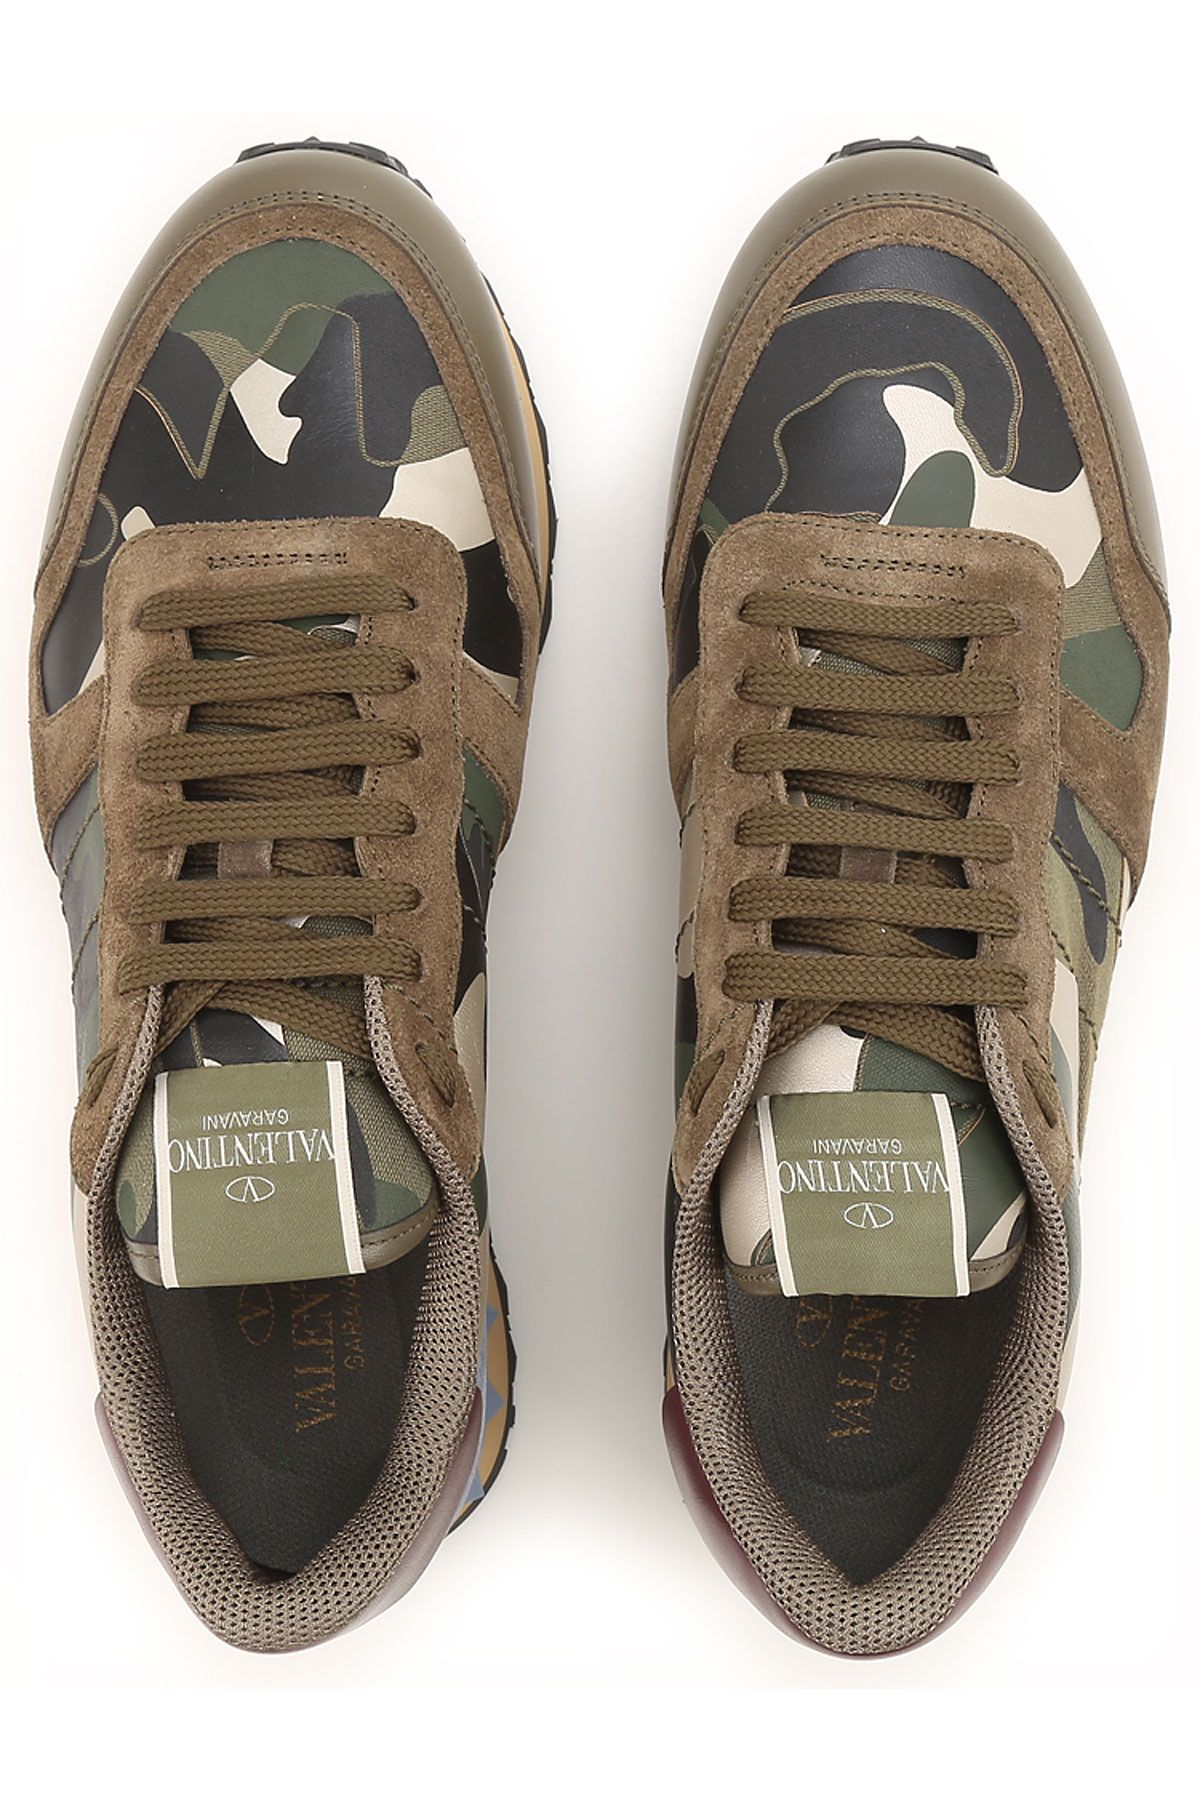 brand new 73107 6bcf7 Chaussures Valentino pour Homme